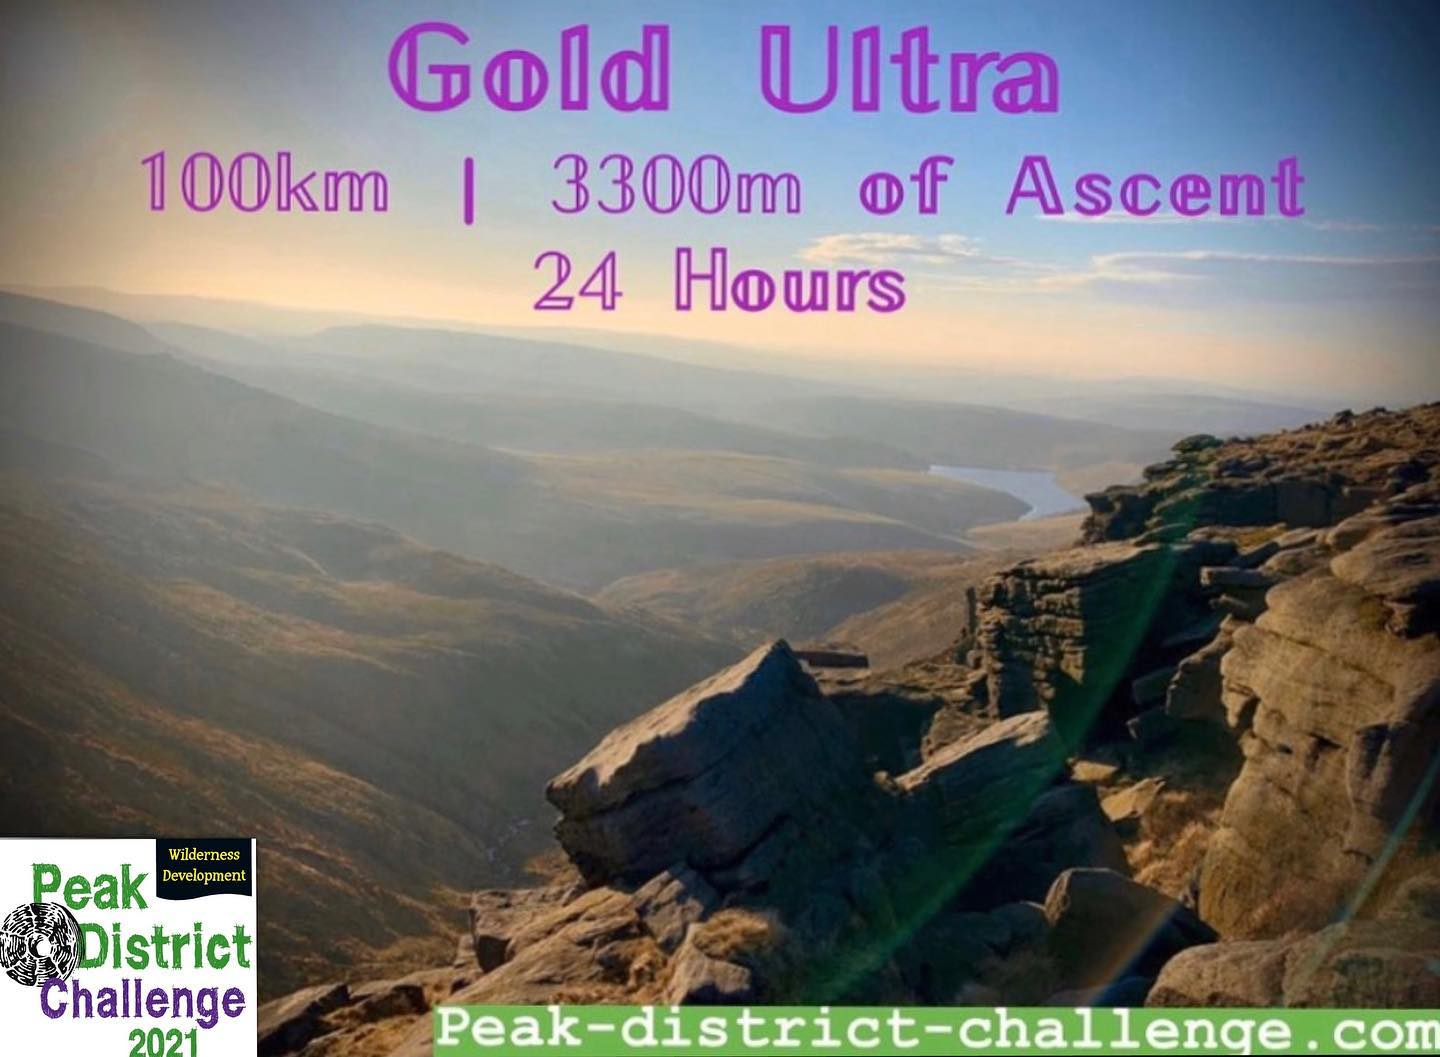 Taking part in this year's Peak District Challenge Gold Ultra 100km route will give you 4 qualify...